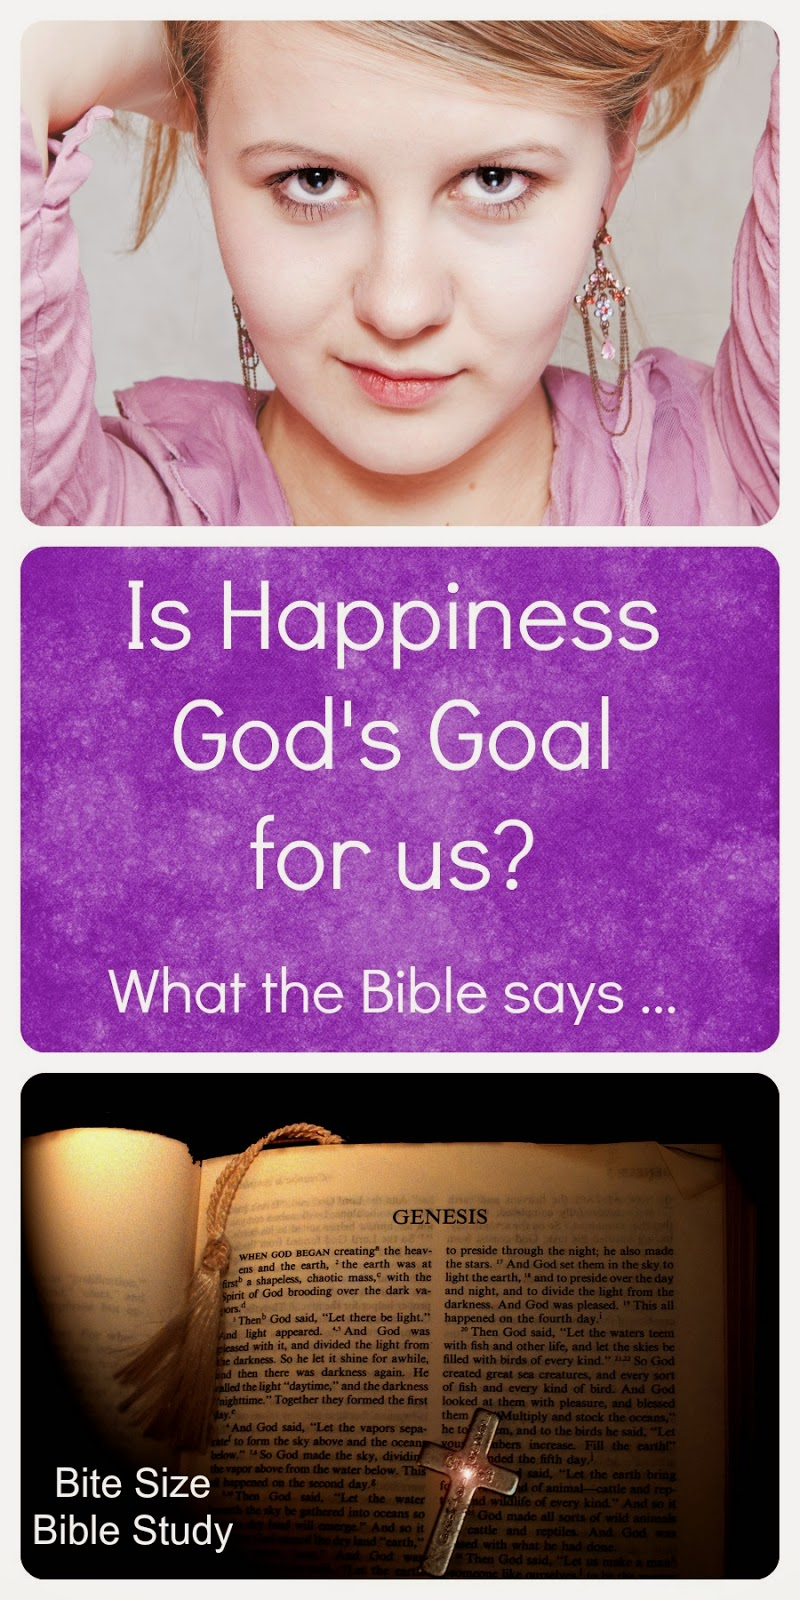 Happiness or Holiness? God's goals for us, God wants us to be Holy, not Happy